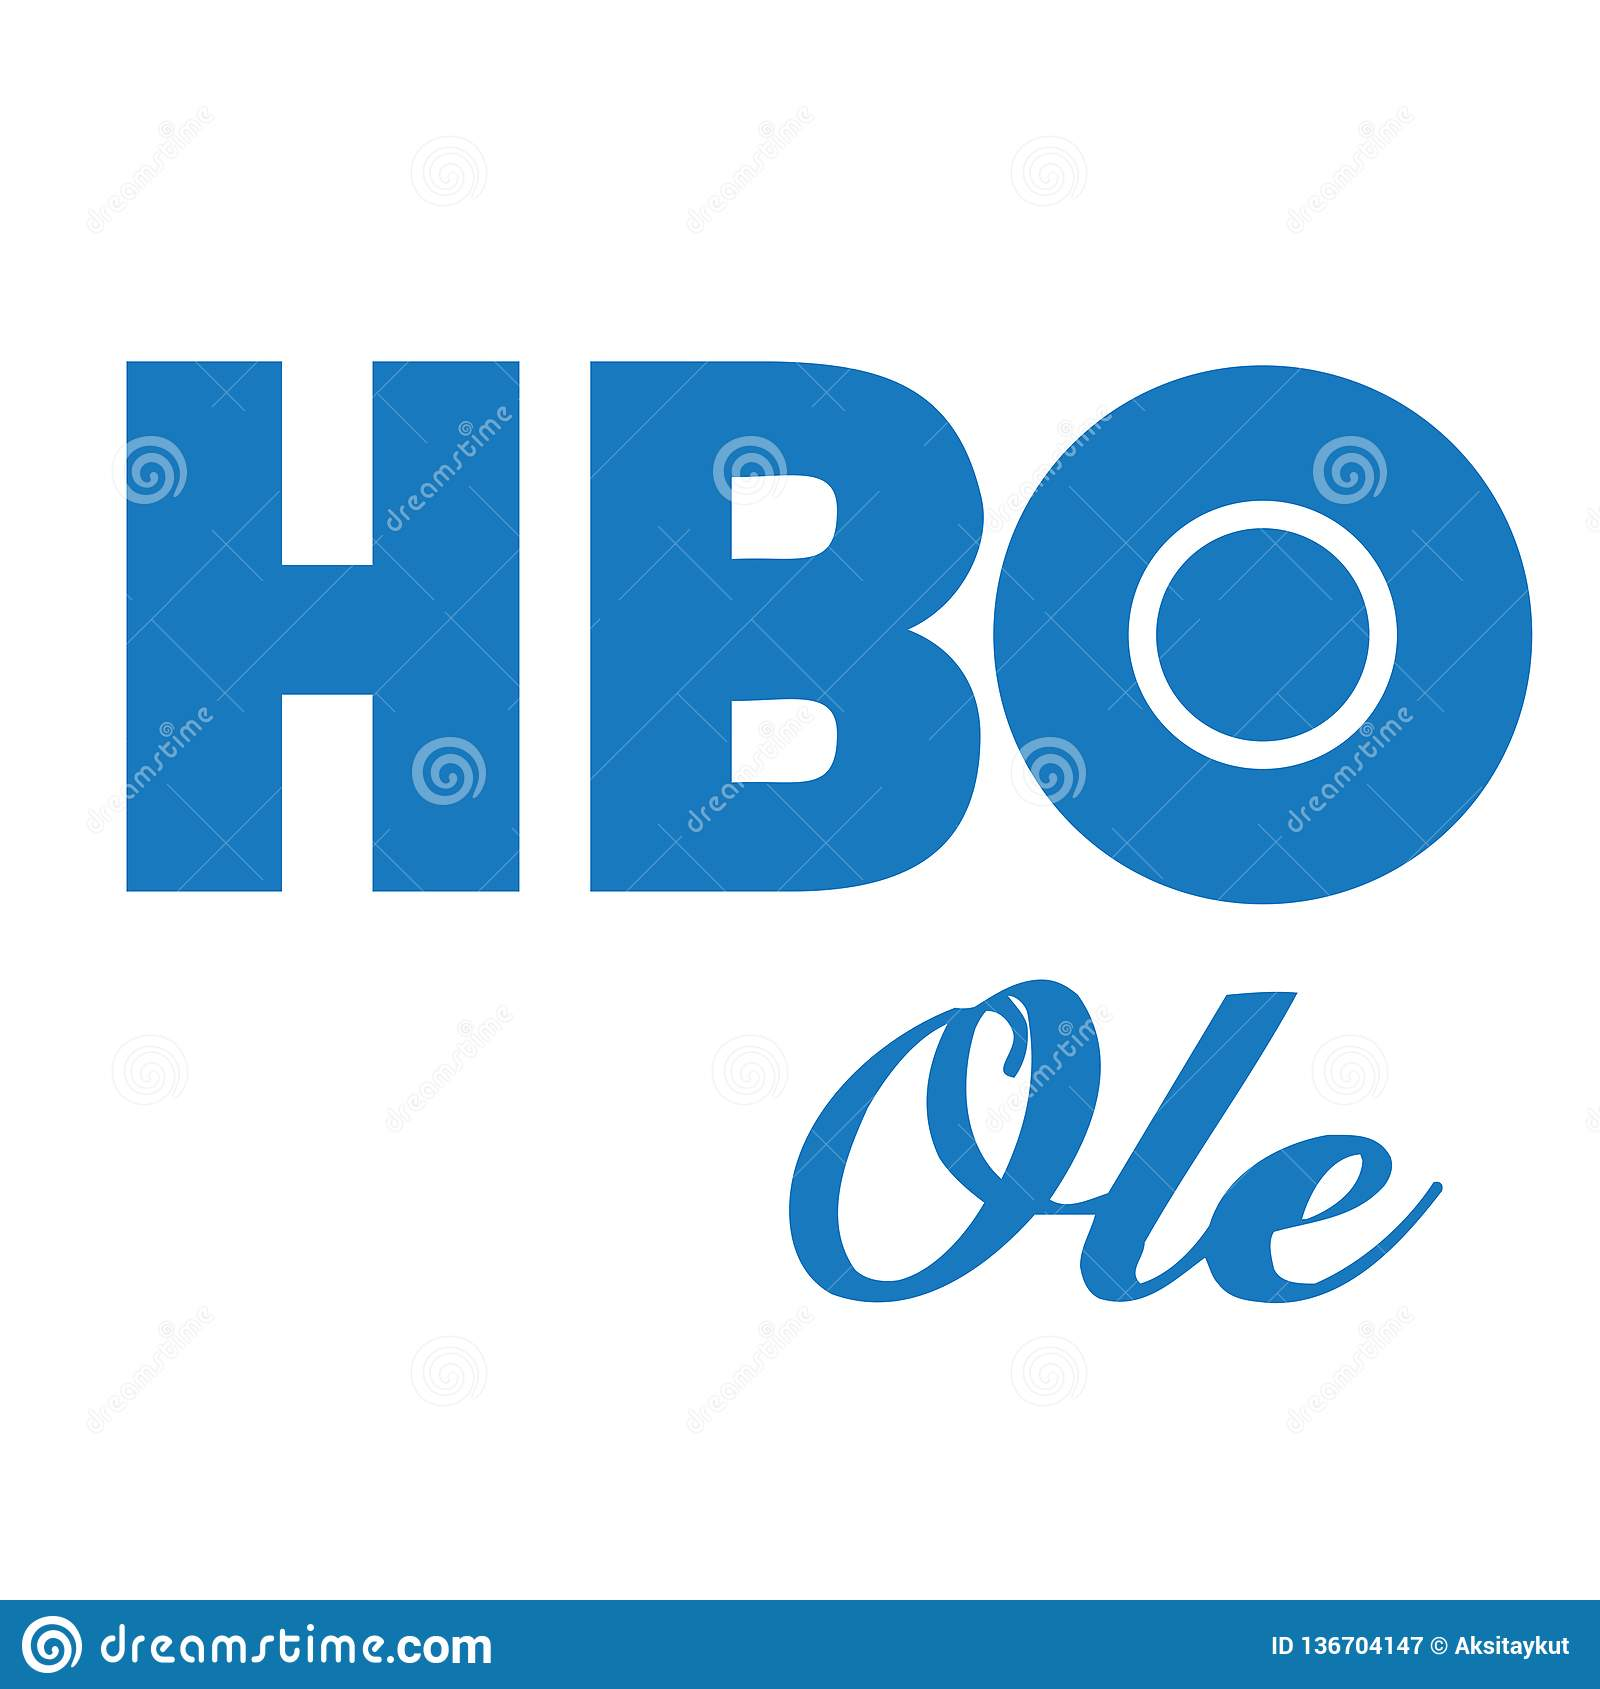 HBO Ole Home Box Office Logo Vector Editorial